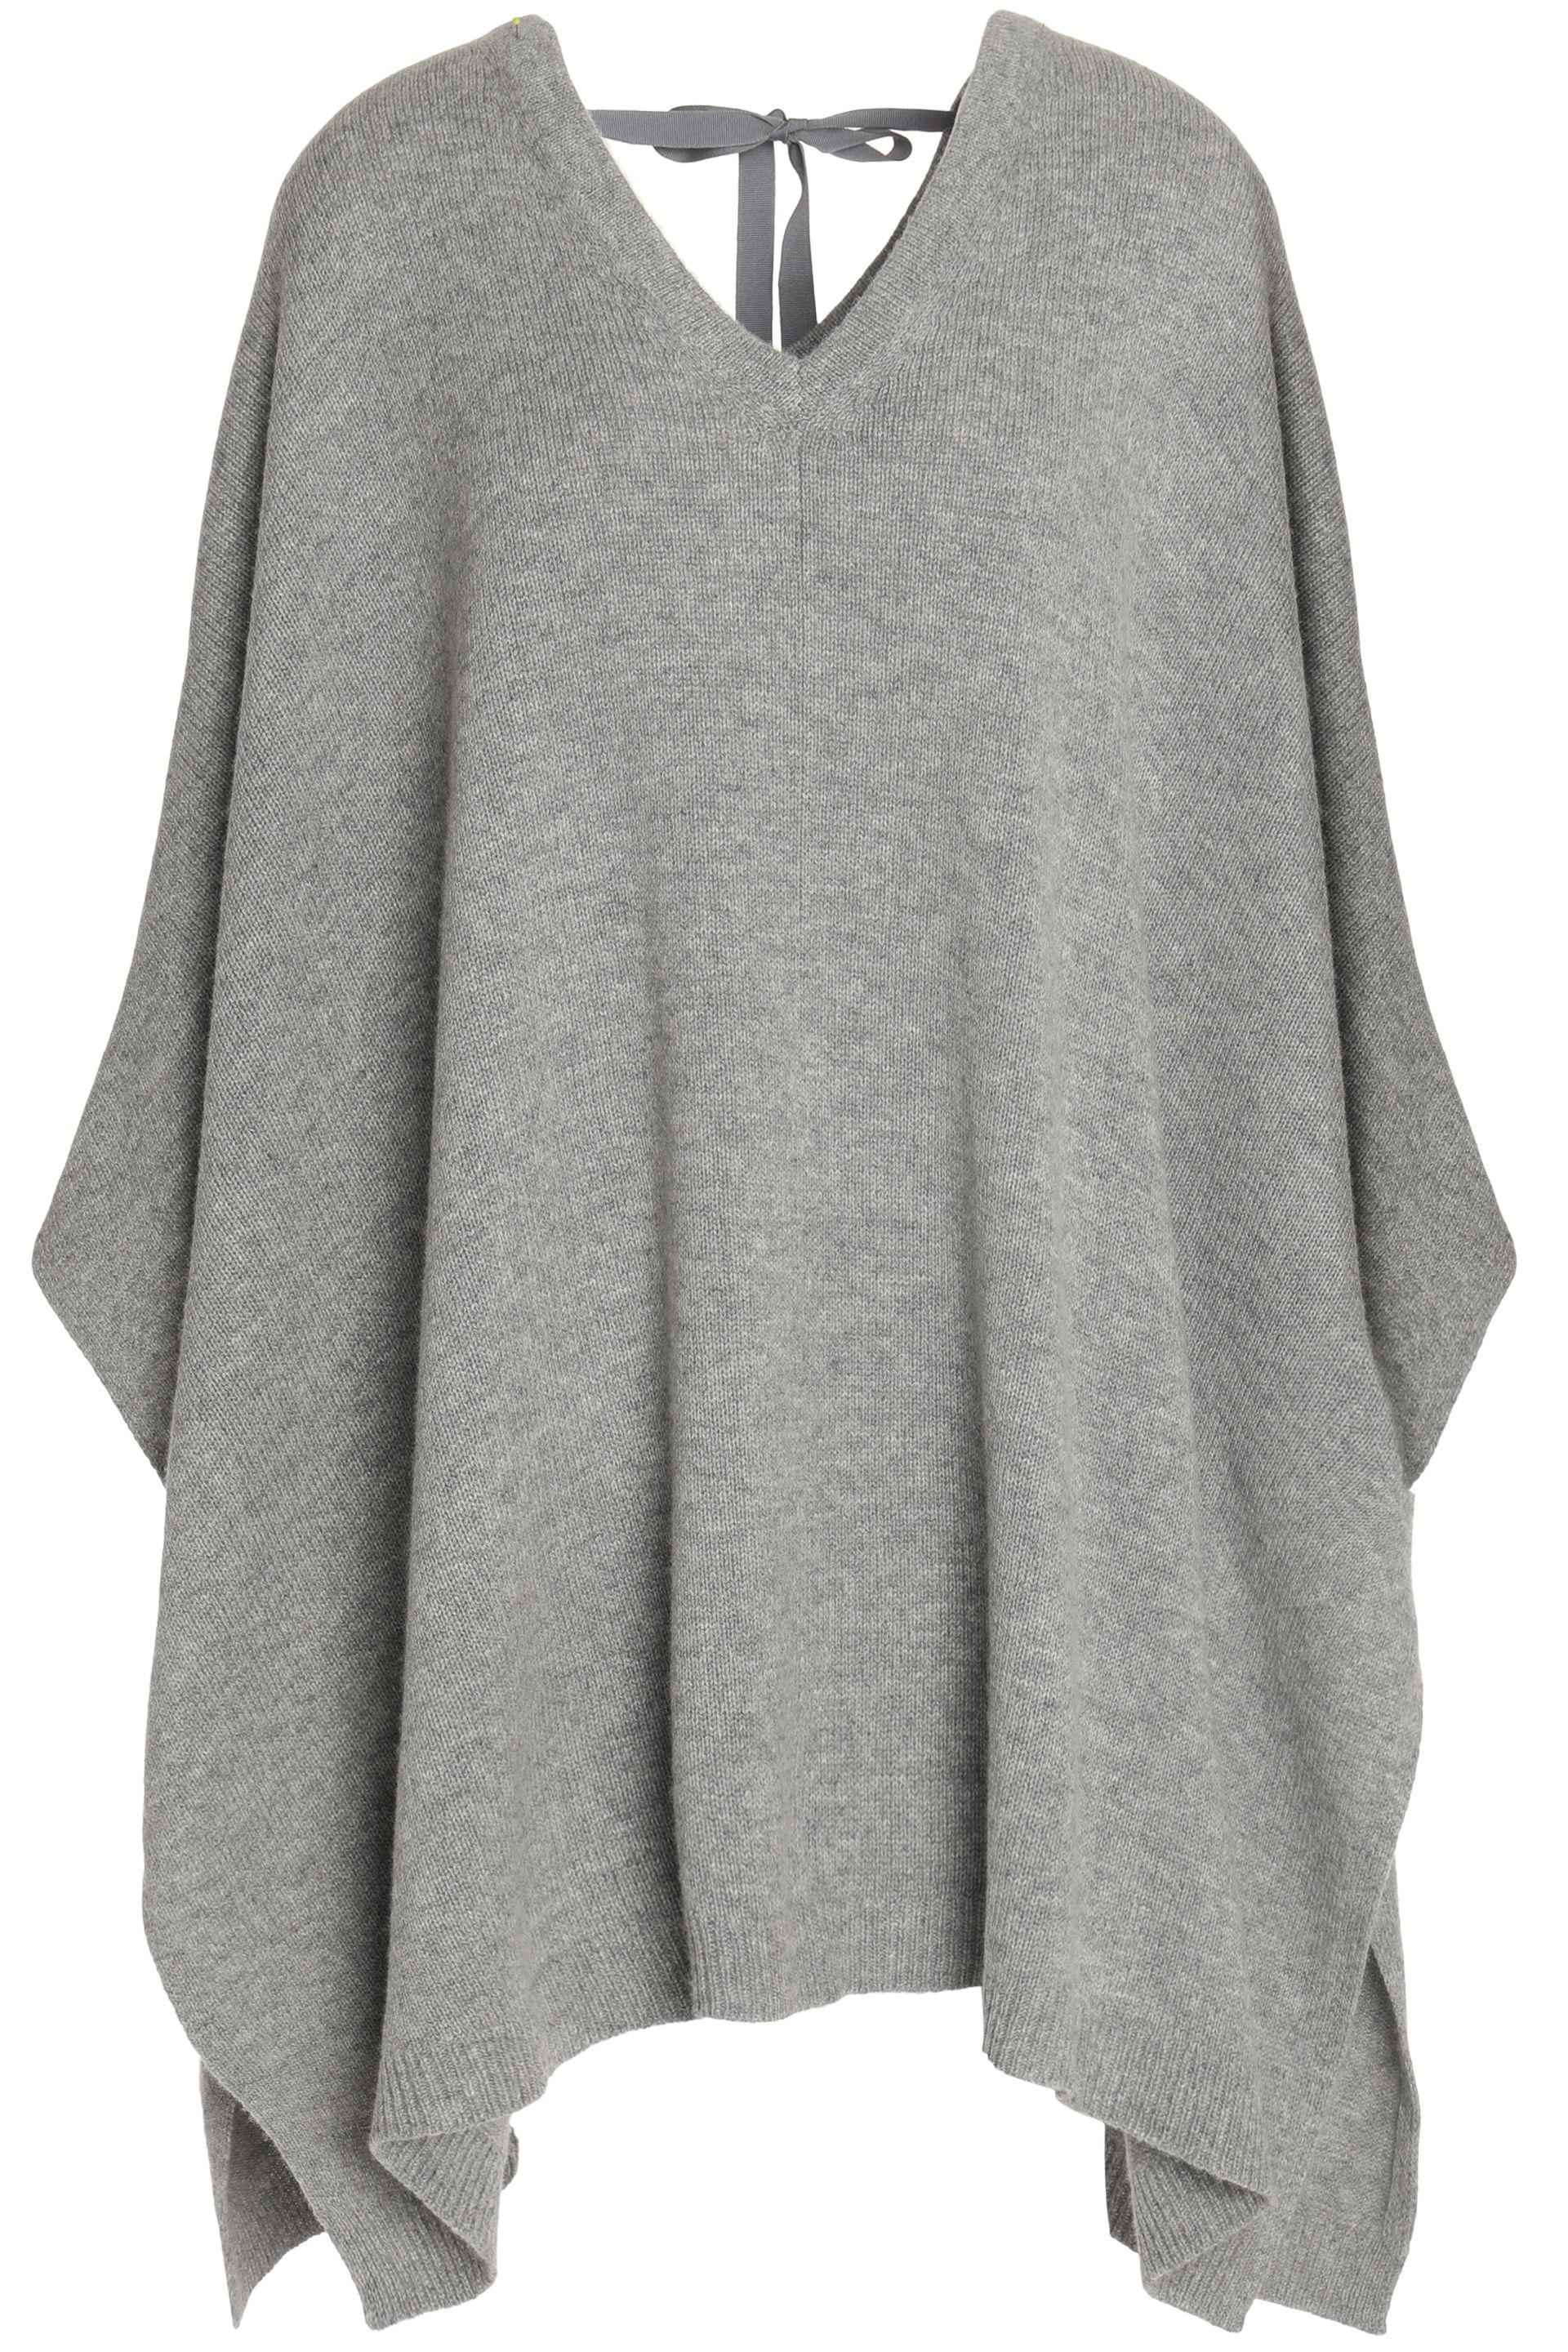 66d3923c266 Theory Wool And Cashmere-blend Poncho Light Gray in Gray - Lyst